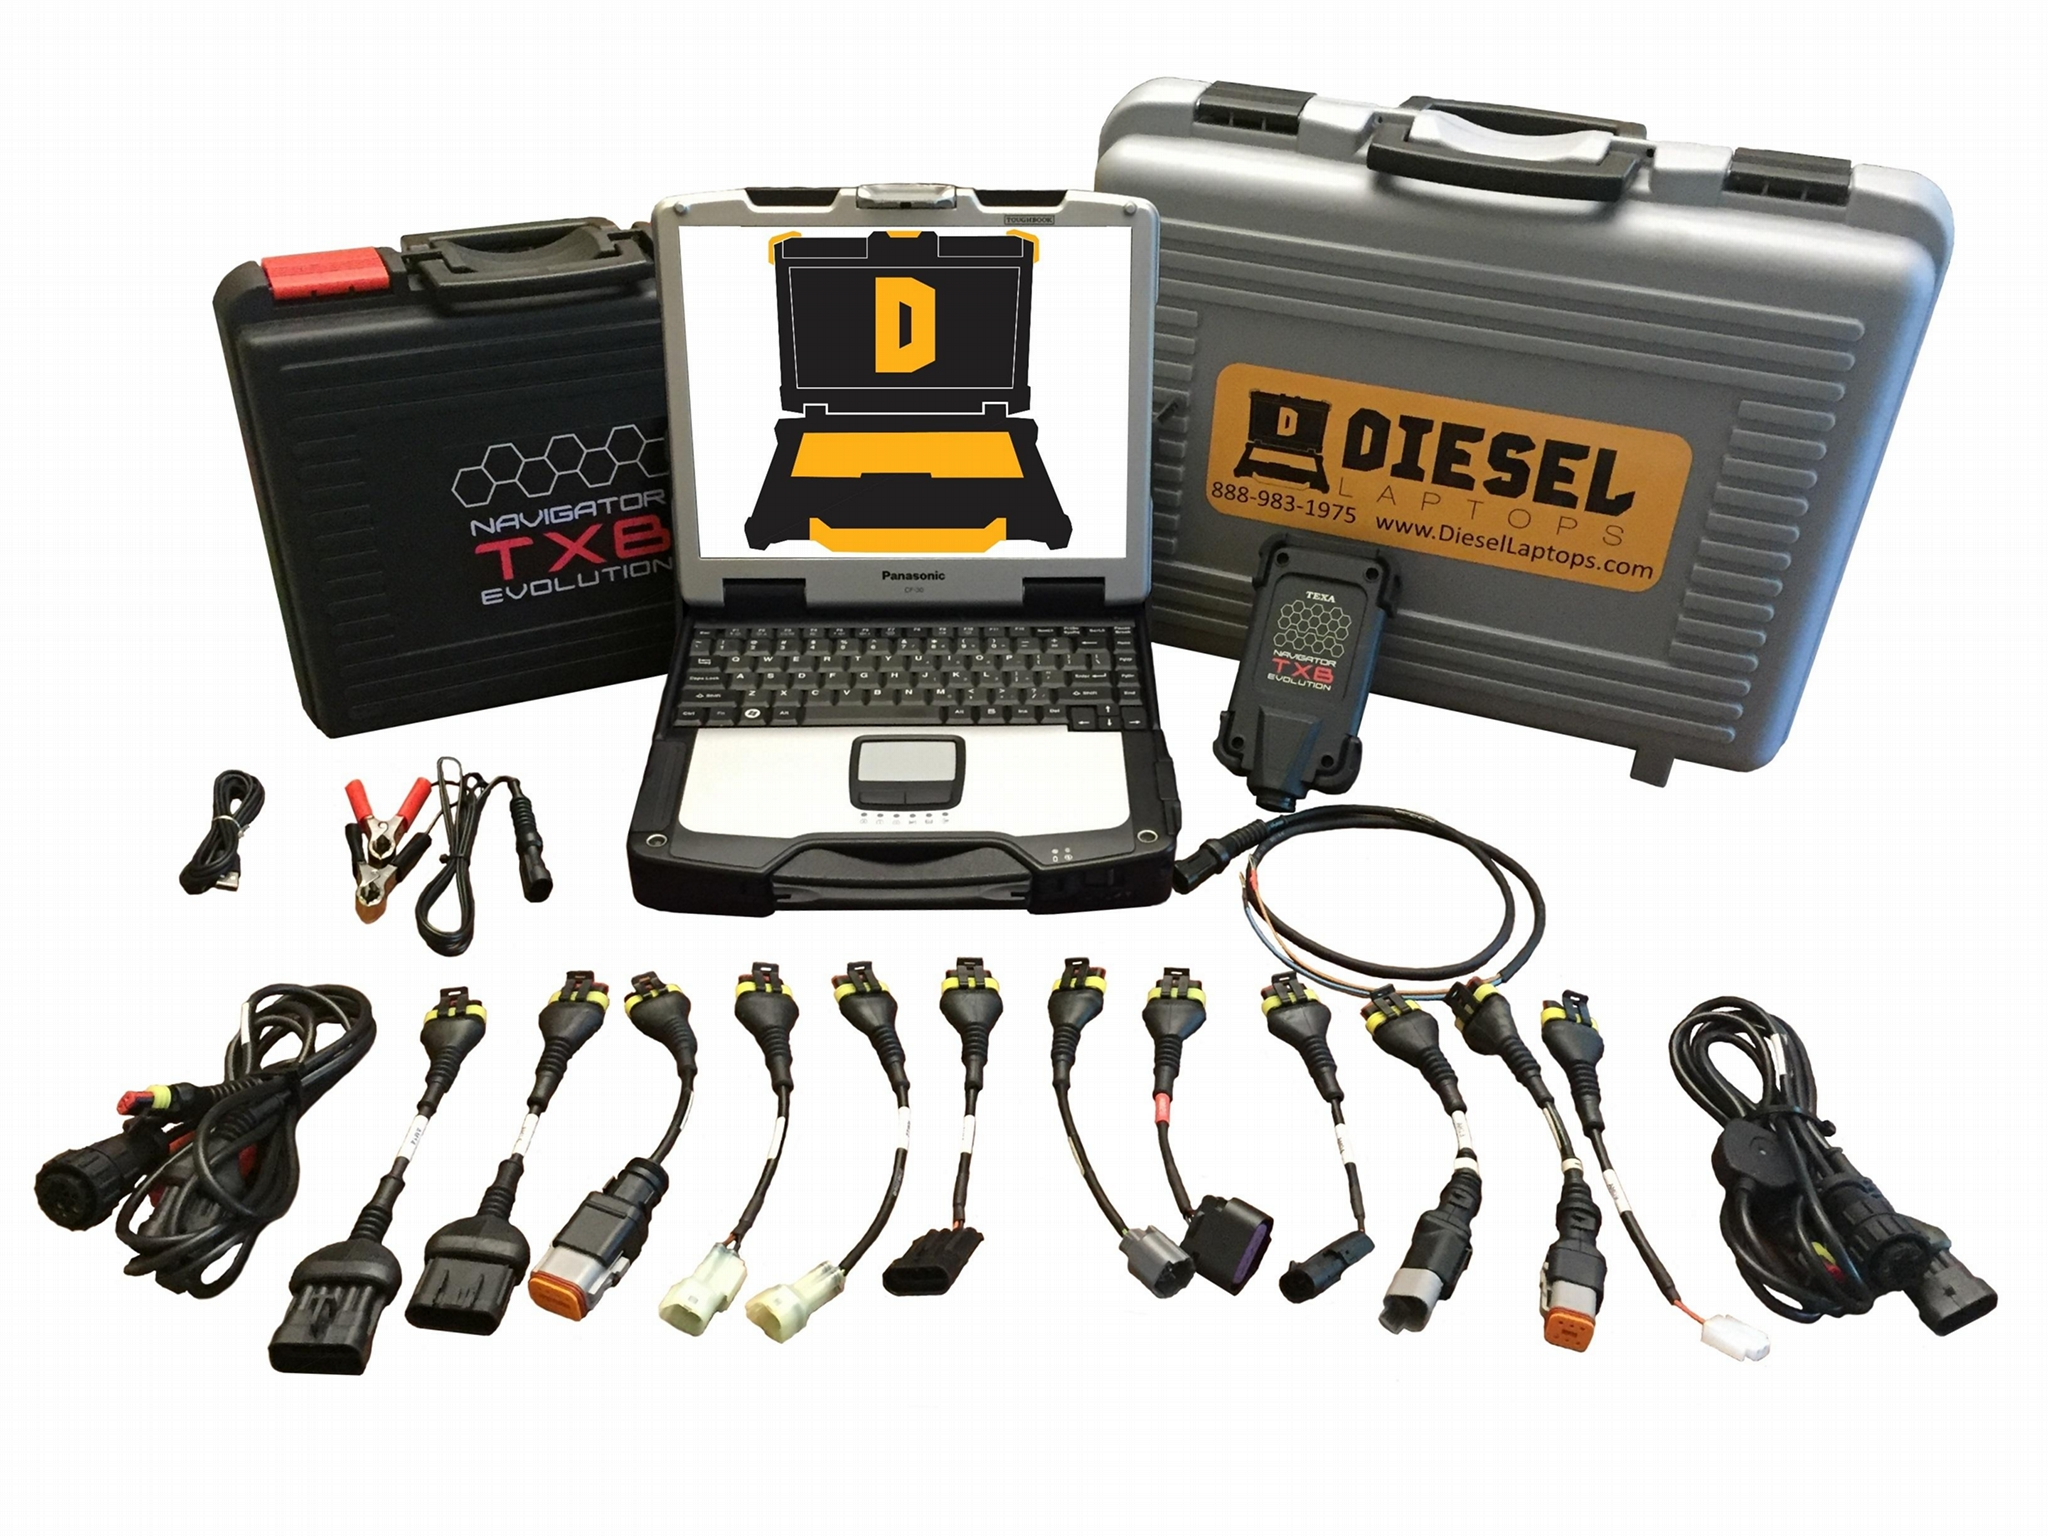 TEXA Dealer Level Marine Diagnostic Scanner Tool Basic Coverage